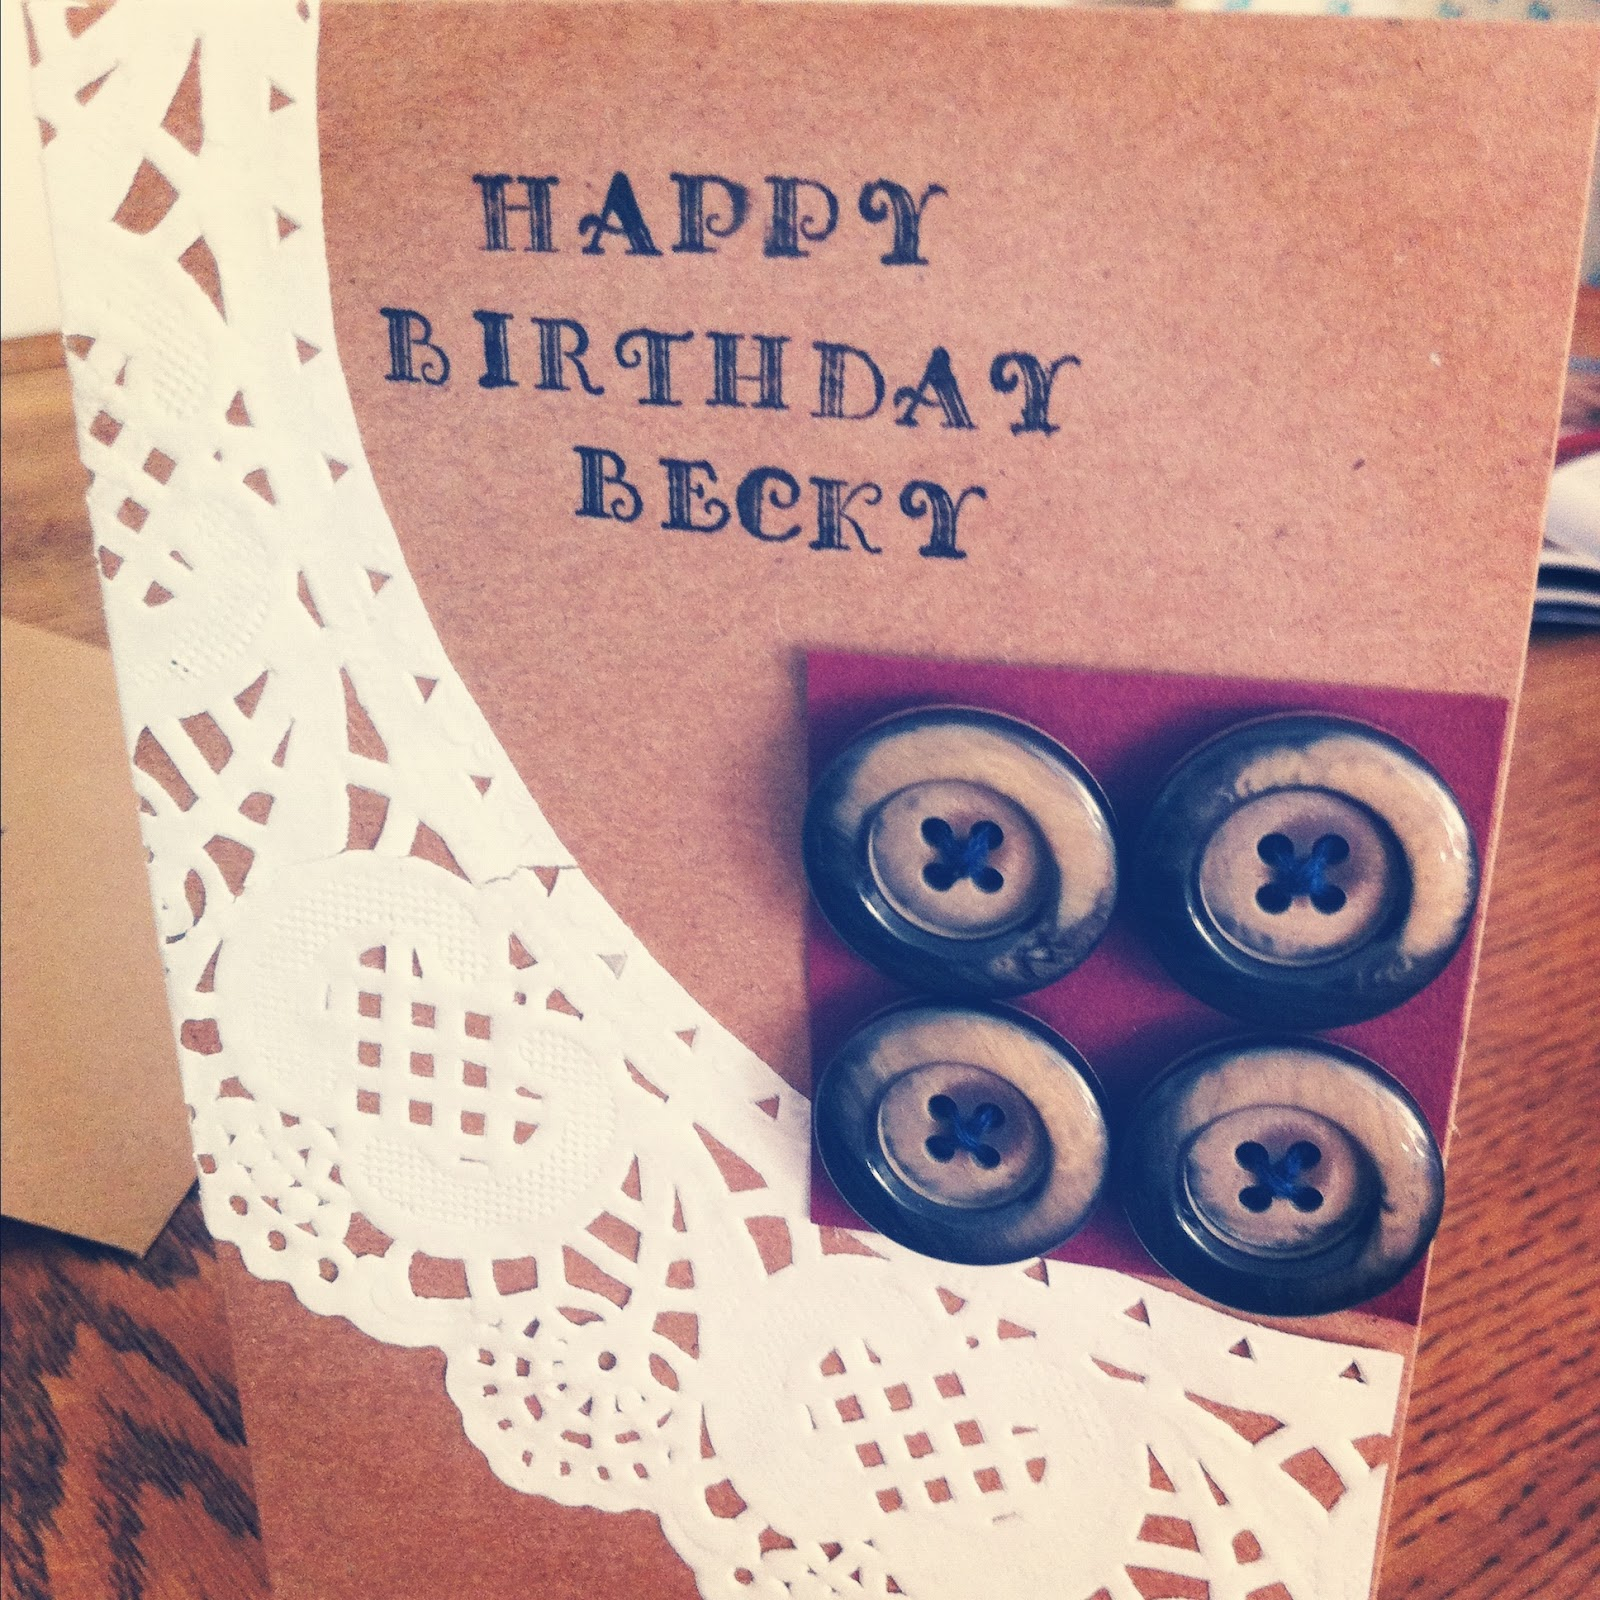 Ideas For Making Birthday Cards For Friends Wonderful Diy Happy Birthday Greeting Card Ideas For Friends